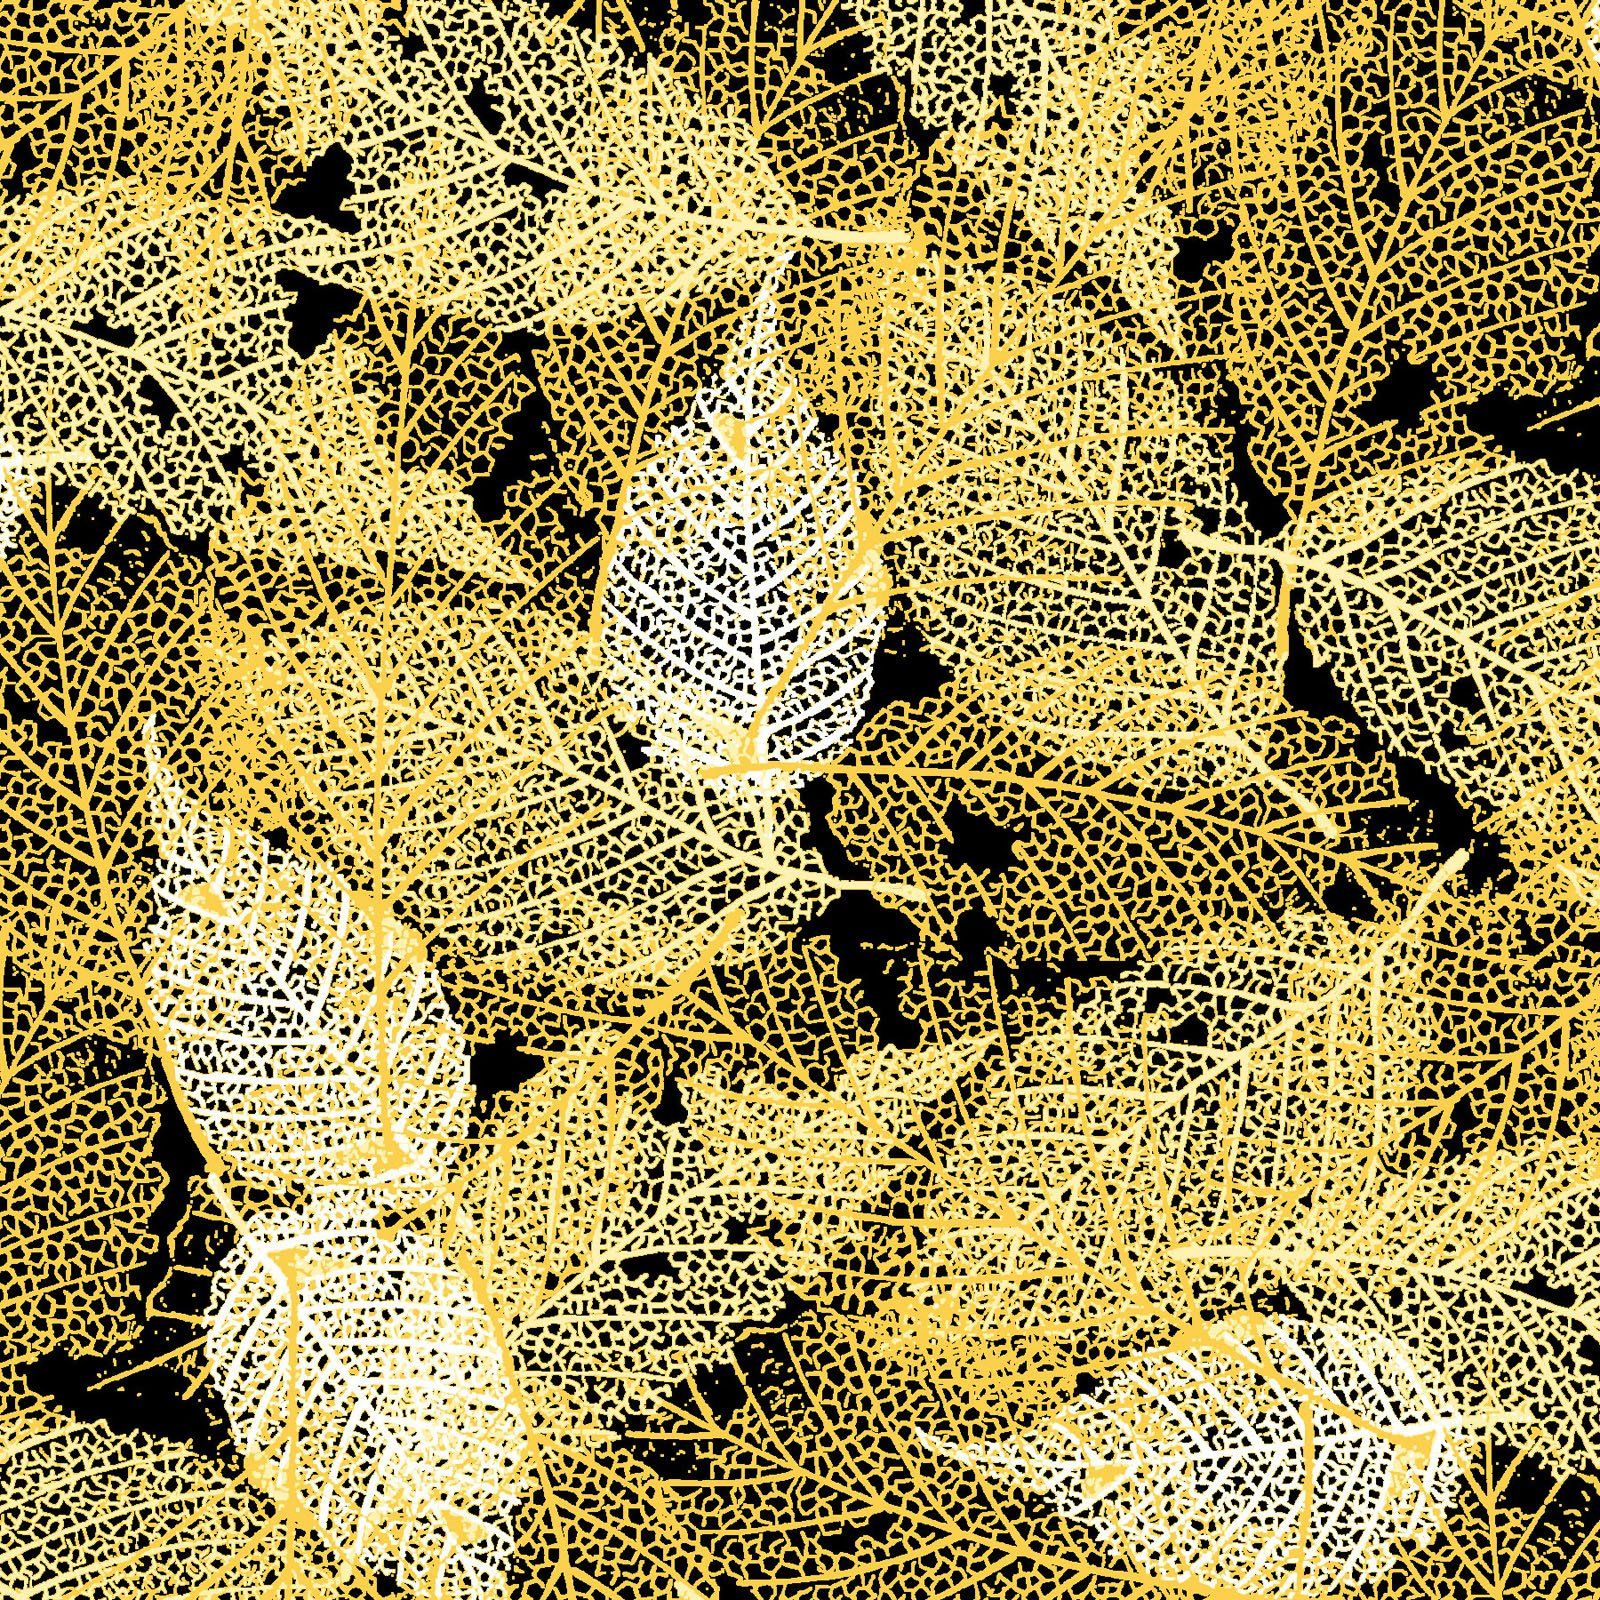 FOLI-4478 YY - FOLIAGE BY P&B BOUTIQUE TEXTURE LEAVES YELLOW - ARRIVING IN MAY 2021